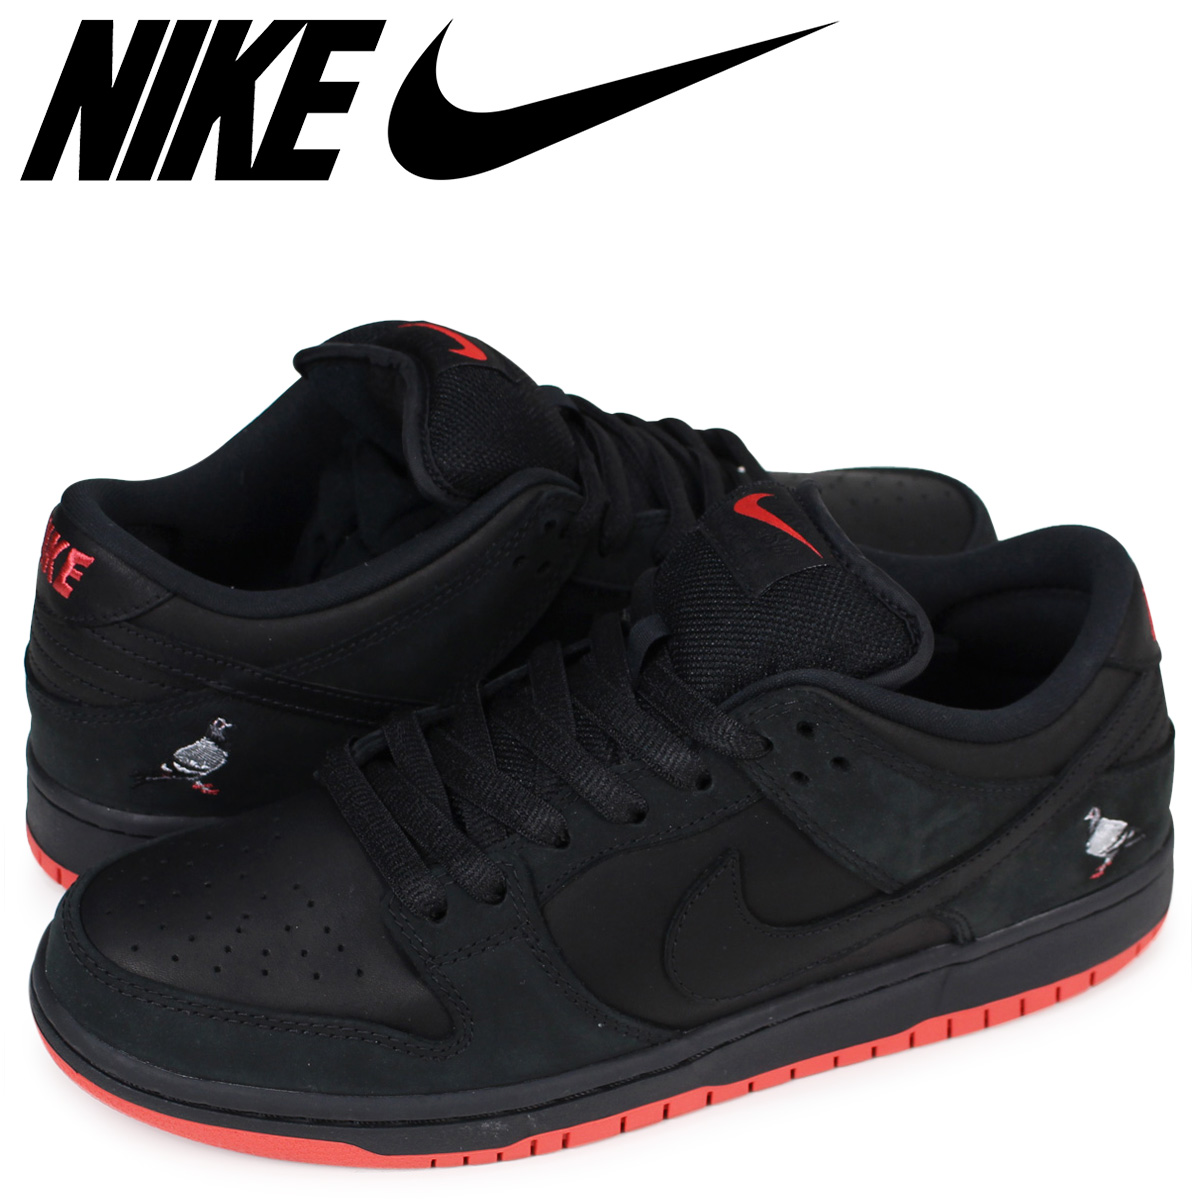 hot sale online de33f ad64a ... norway nike sb zoom dunk low trd qs pigeon nike dunk low sneakers  883232 008 mens